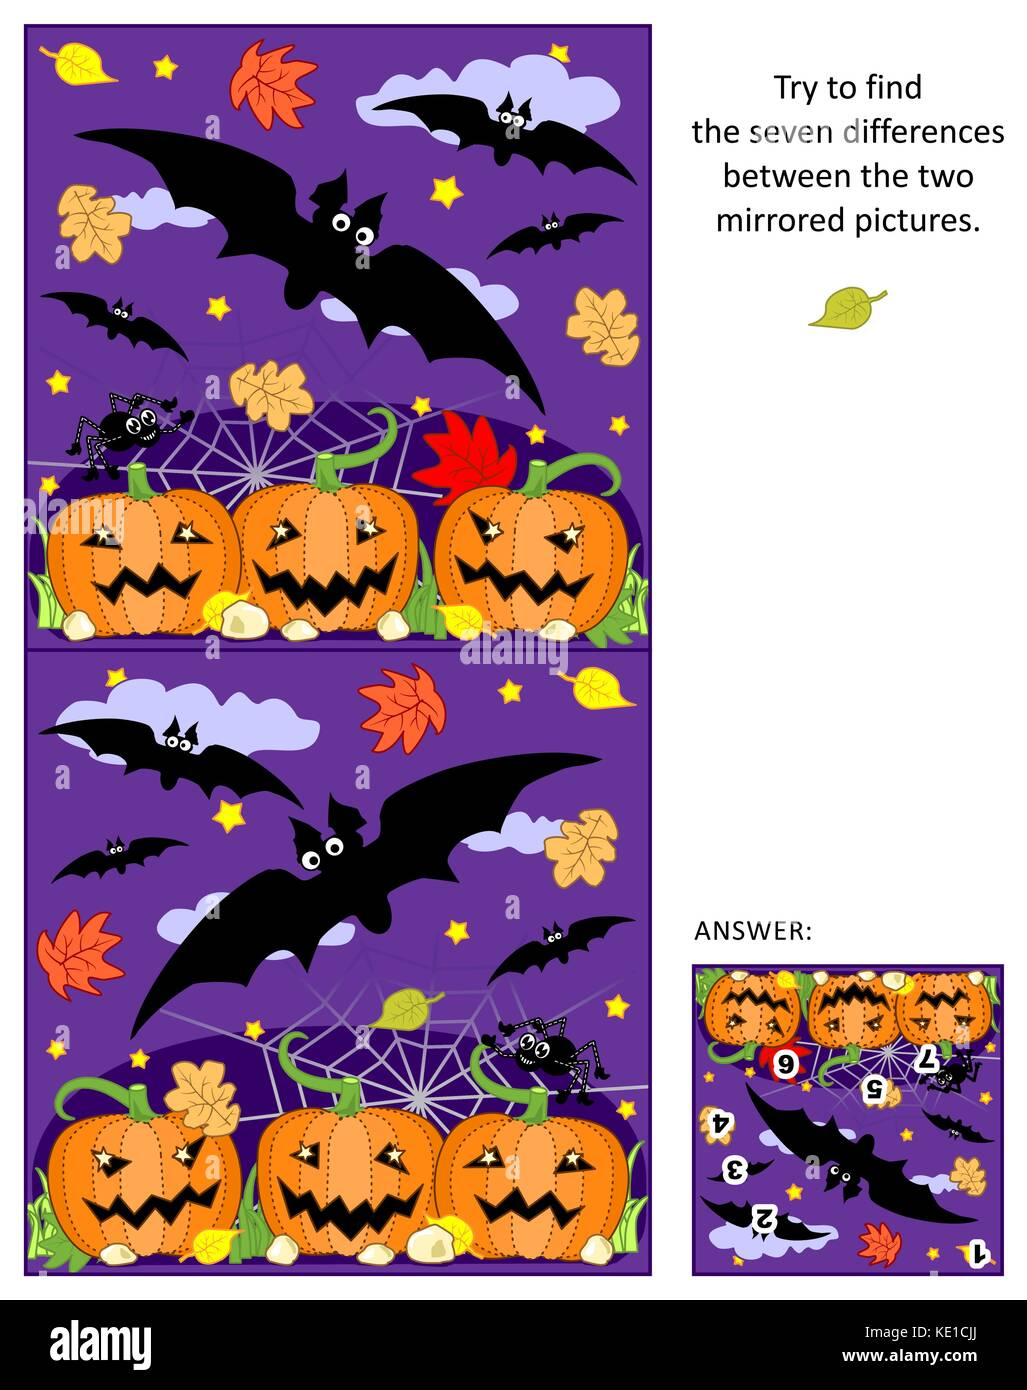 Halloween themed visual puzzle: Find the seven differences between the two mirrored pictures of flying bats, pumpkin - Stock Image